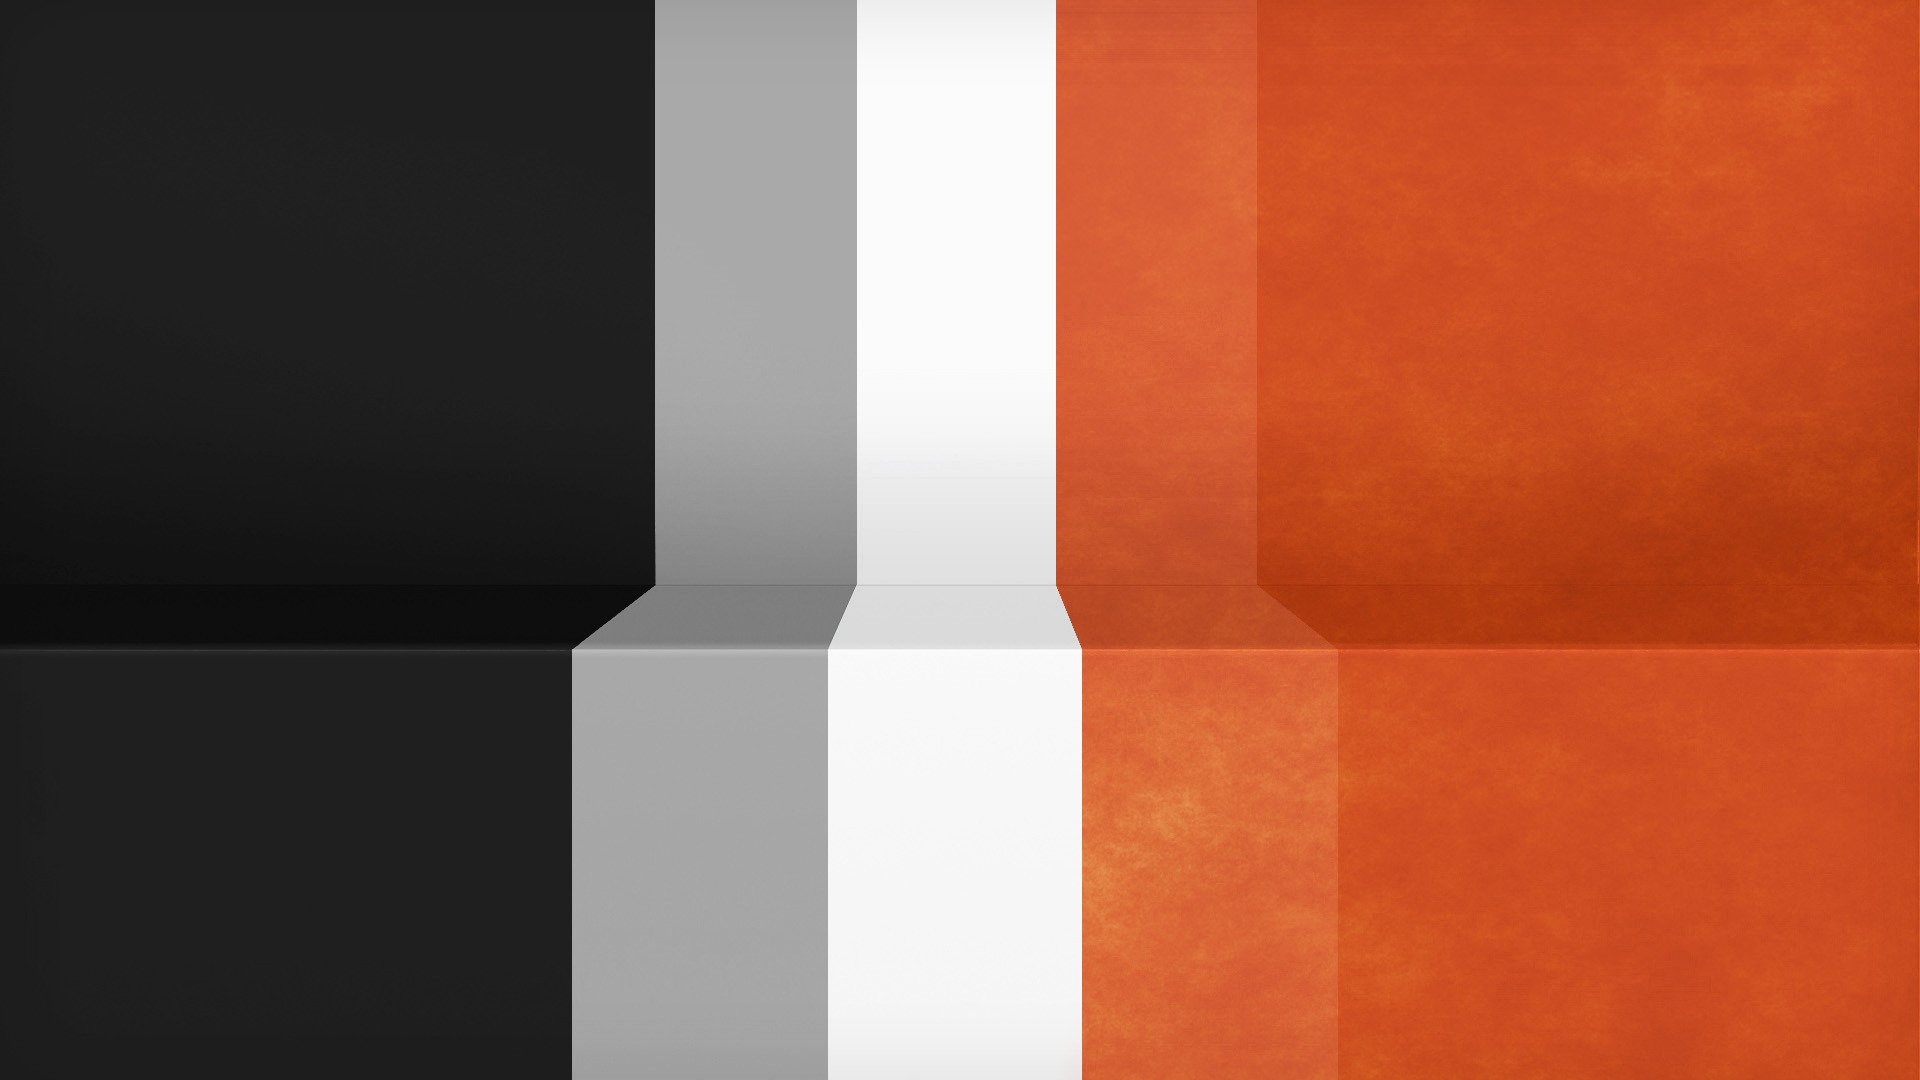 Abstract Black Minimalistic White Orange Gray Textures Lines Racing Lack Simple Stripes Shading Wallpaper 1920x1080 60230 Wallpaperup